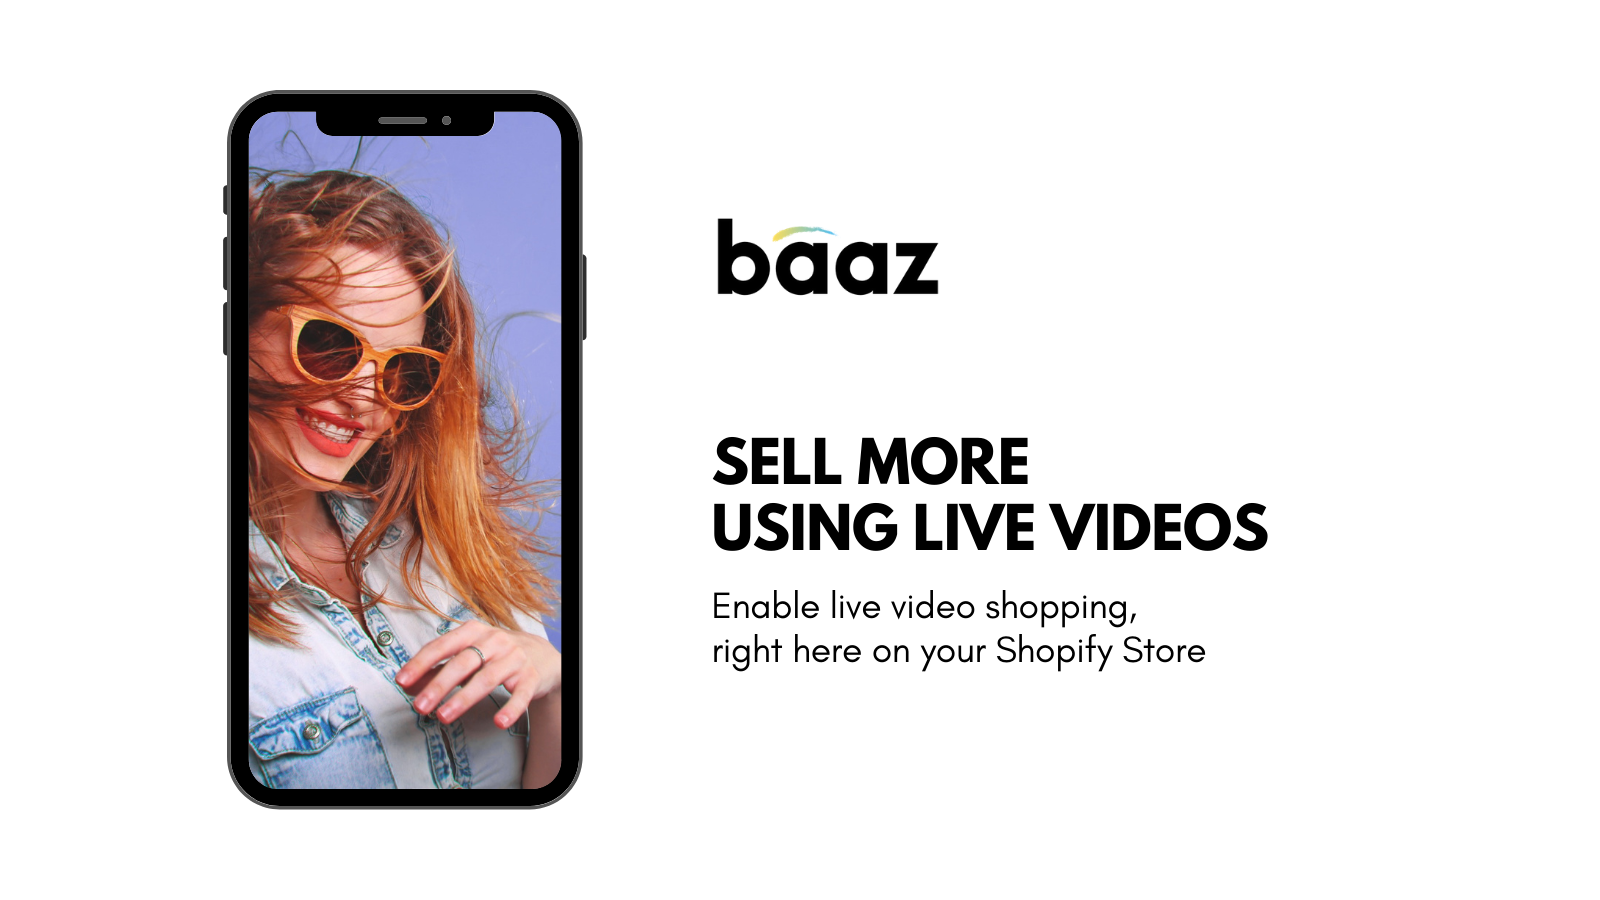 Enable live video shopping to your storefront